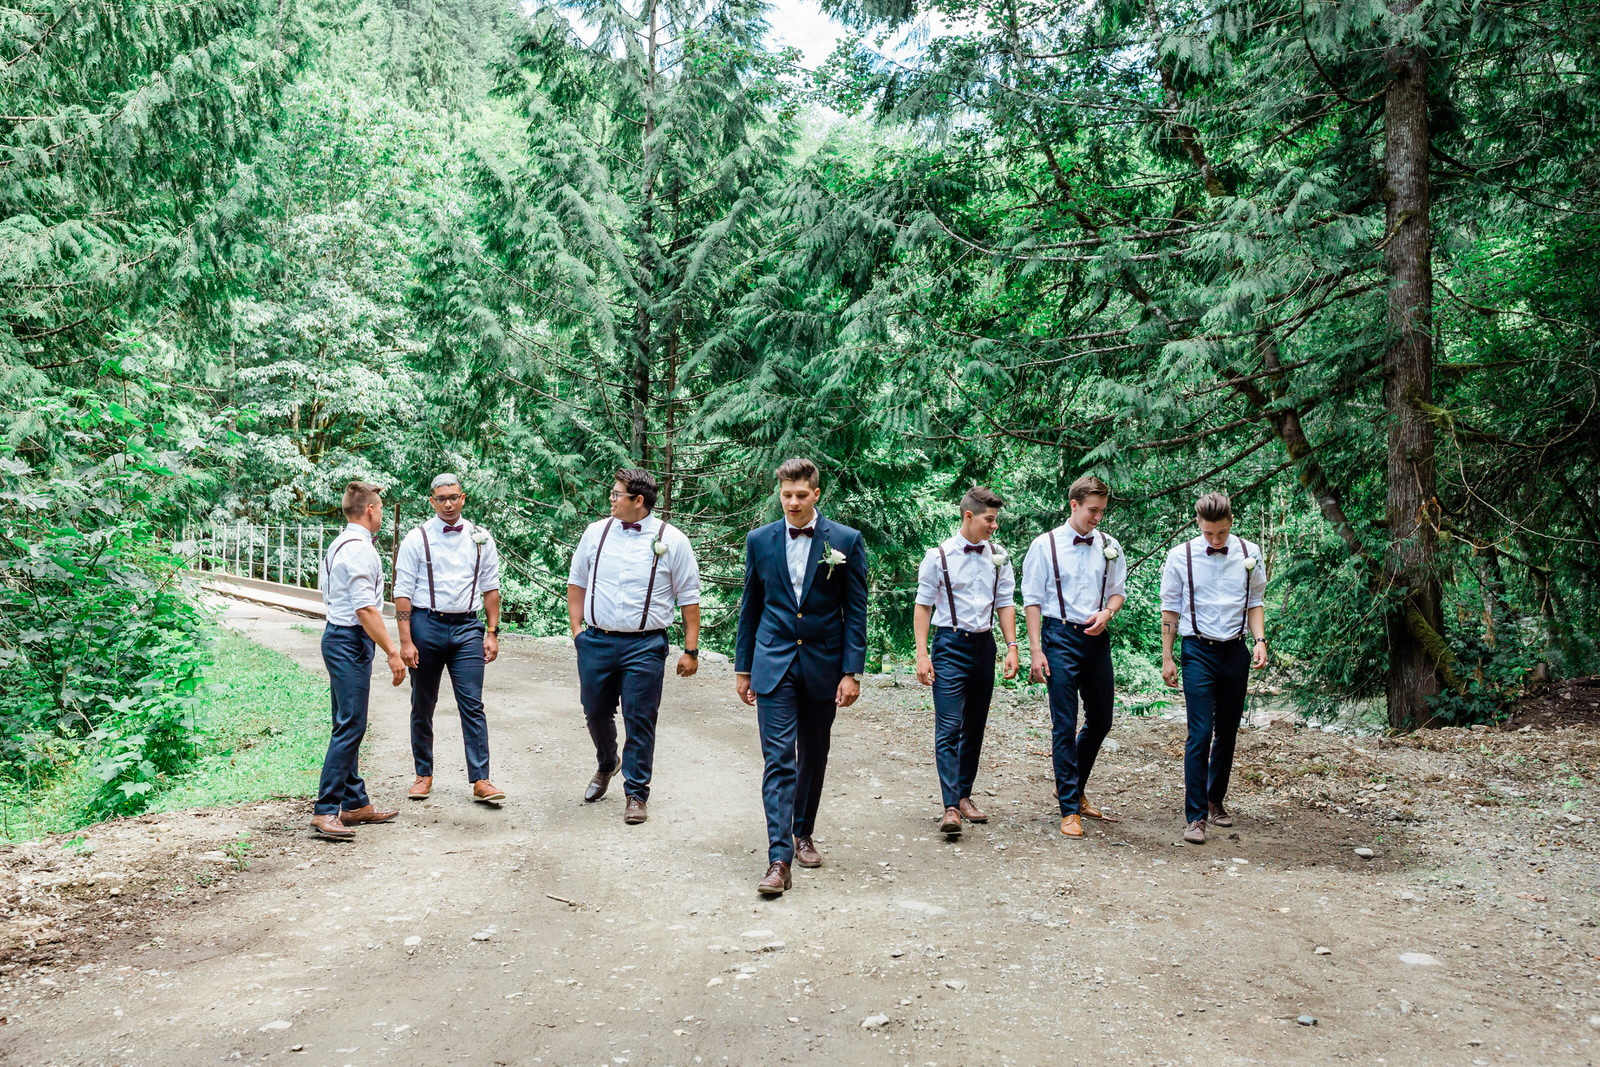 groom & groomsmen in the forest